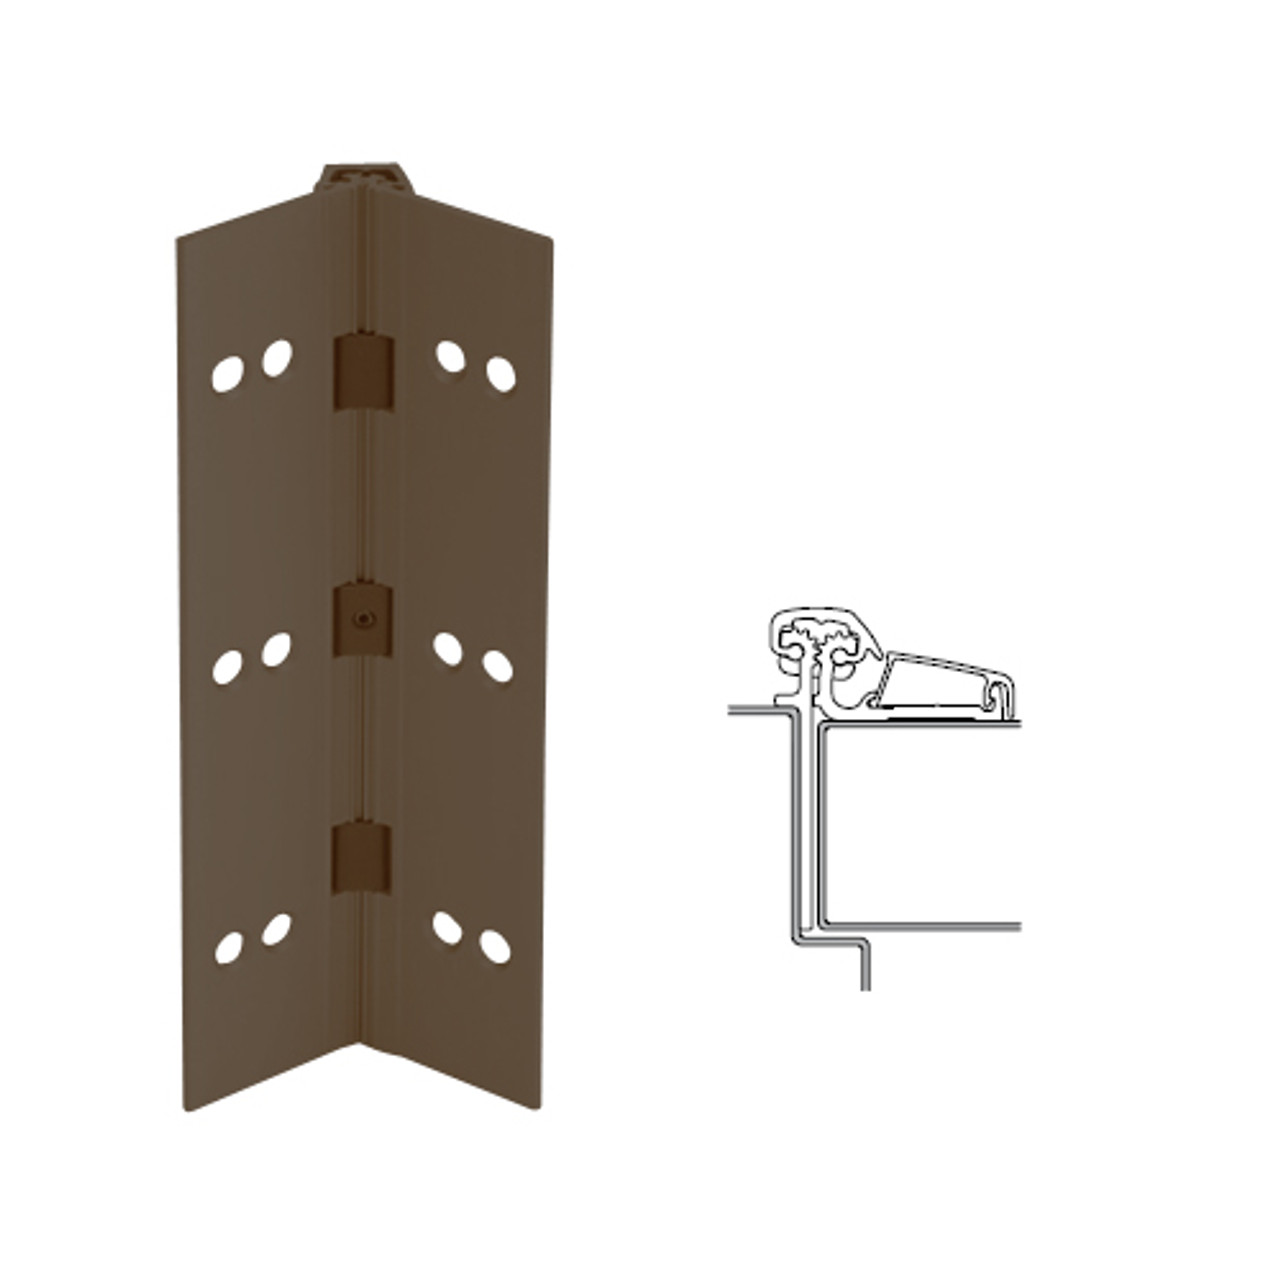 054XY-313AN-120 IVES Adjustable Half Surface Continuous Geared Hinges in Dark Bronze Anodized